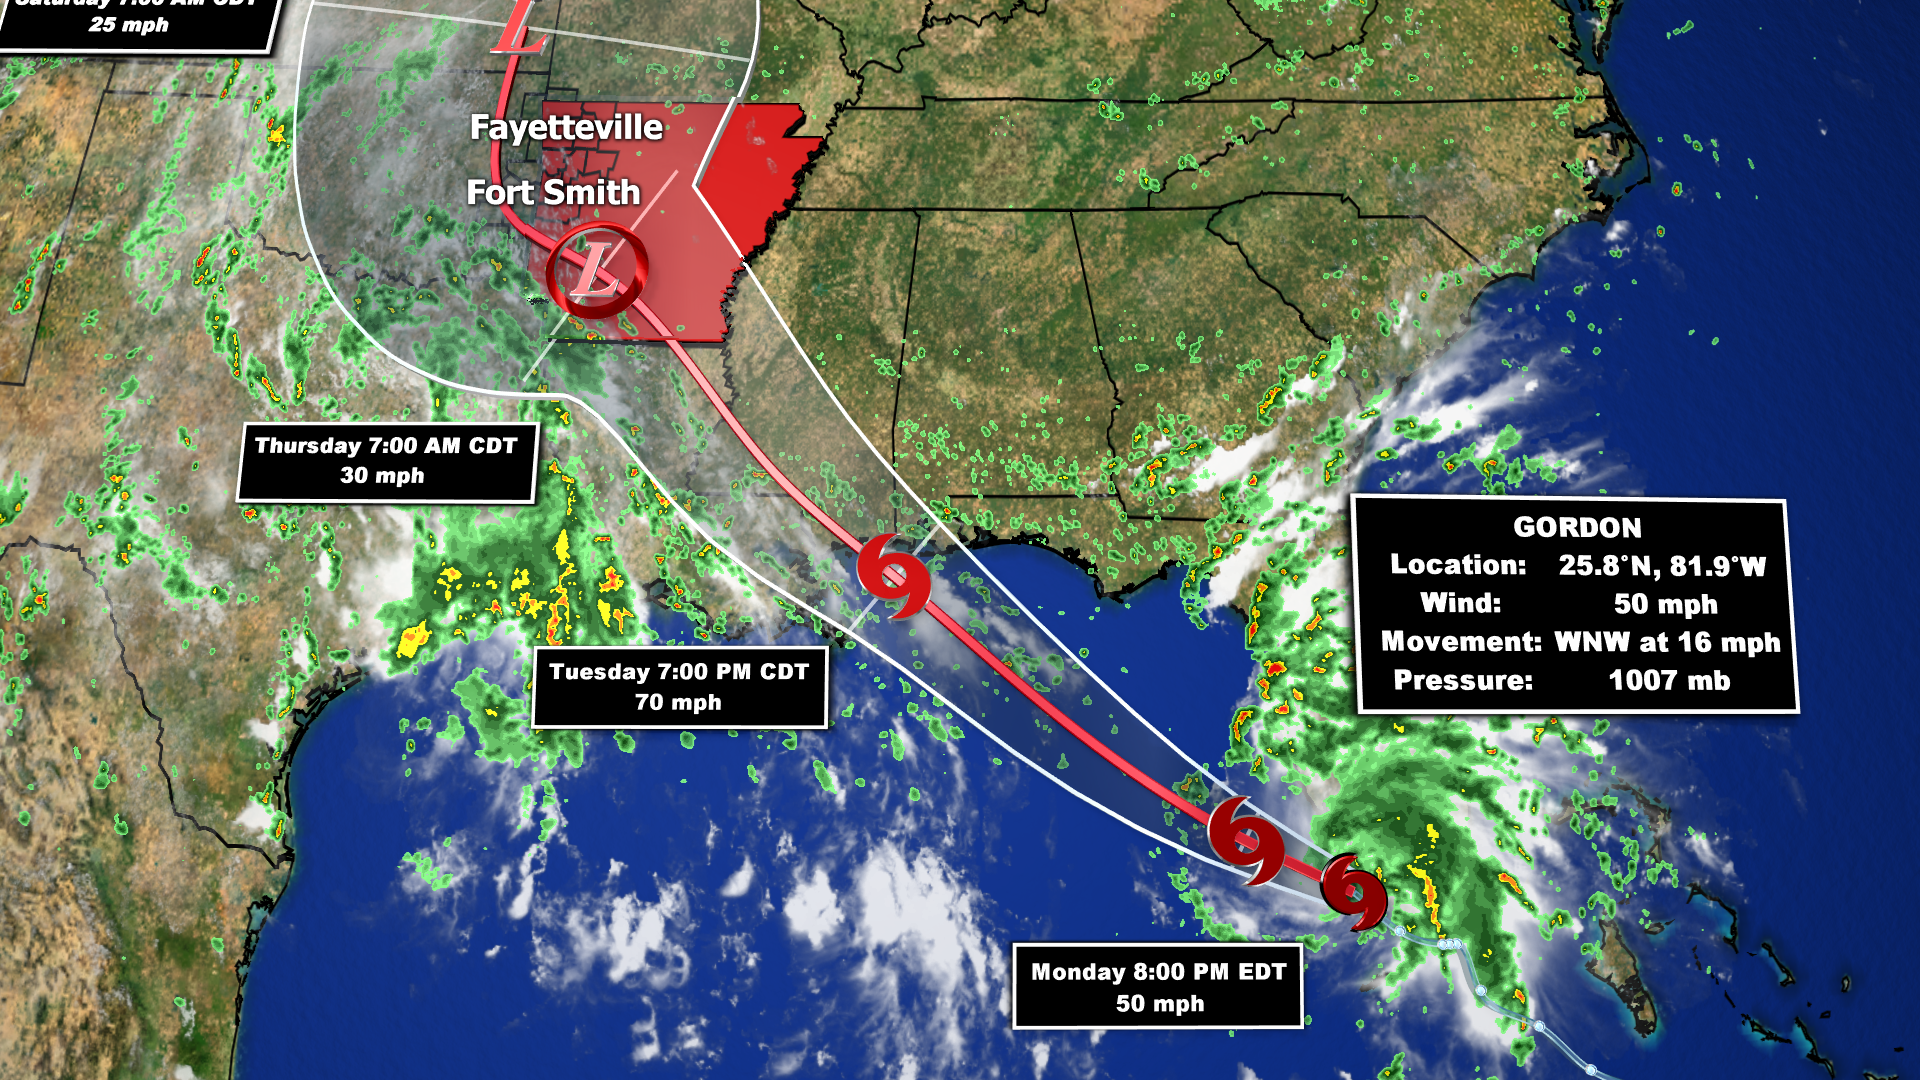 Gulf Coast prepares for Gordon's expected arrival as hurricane